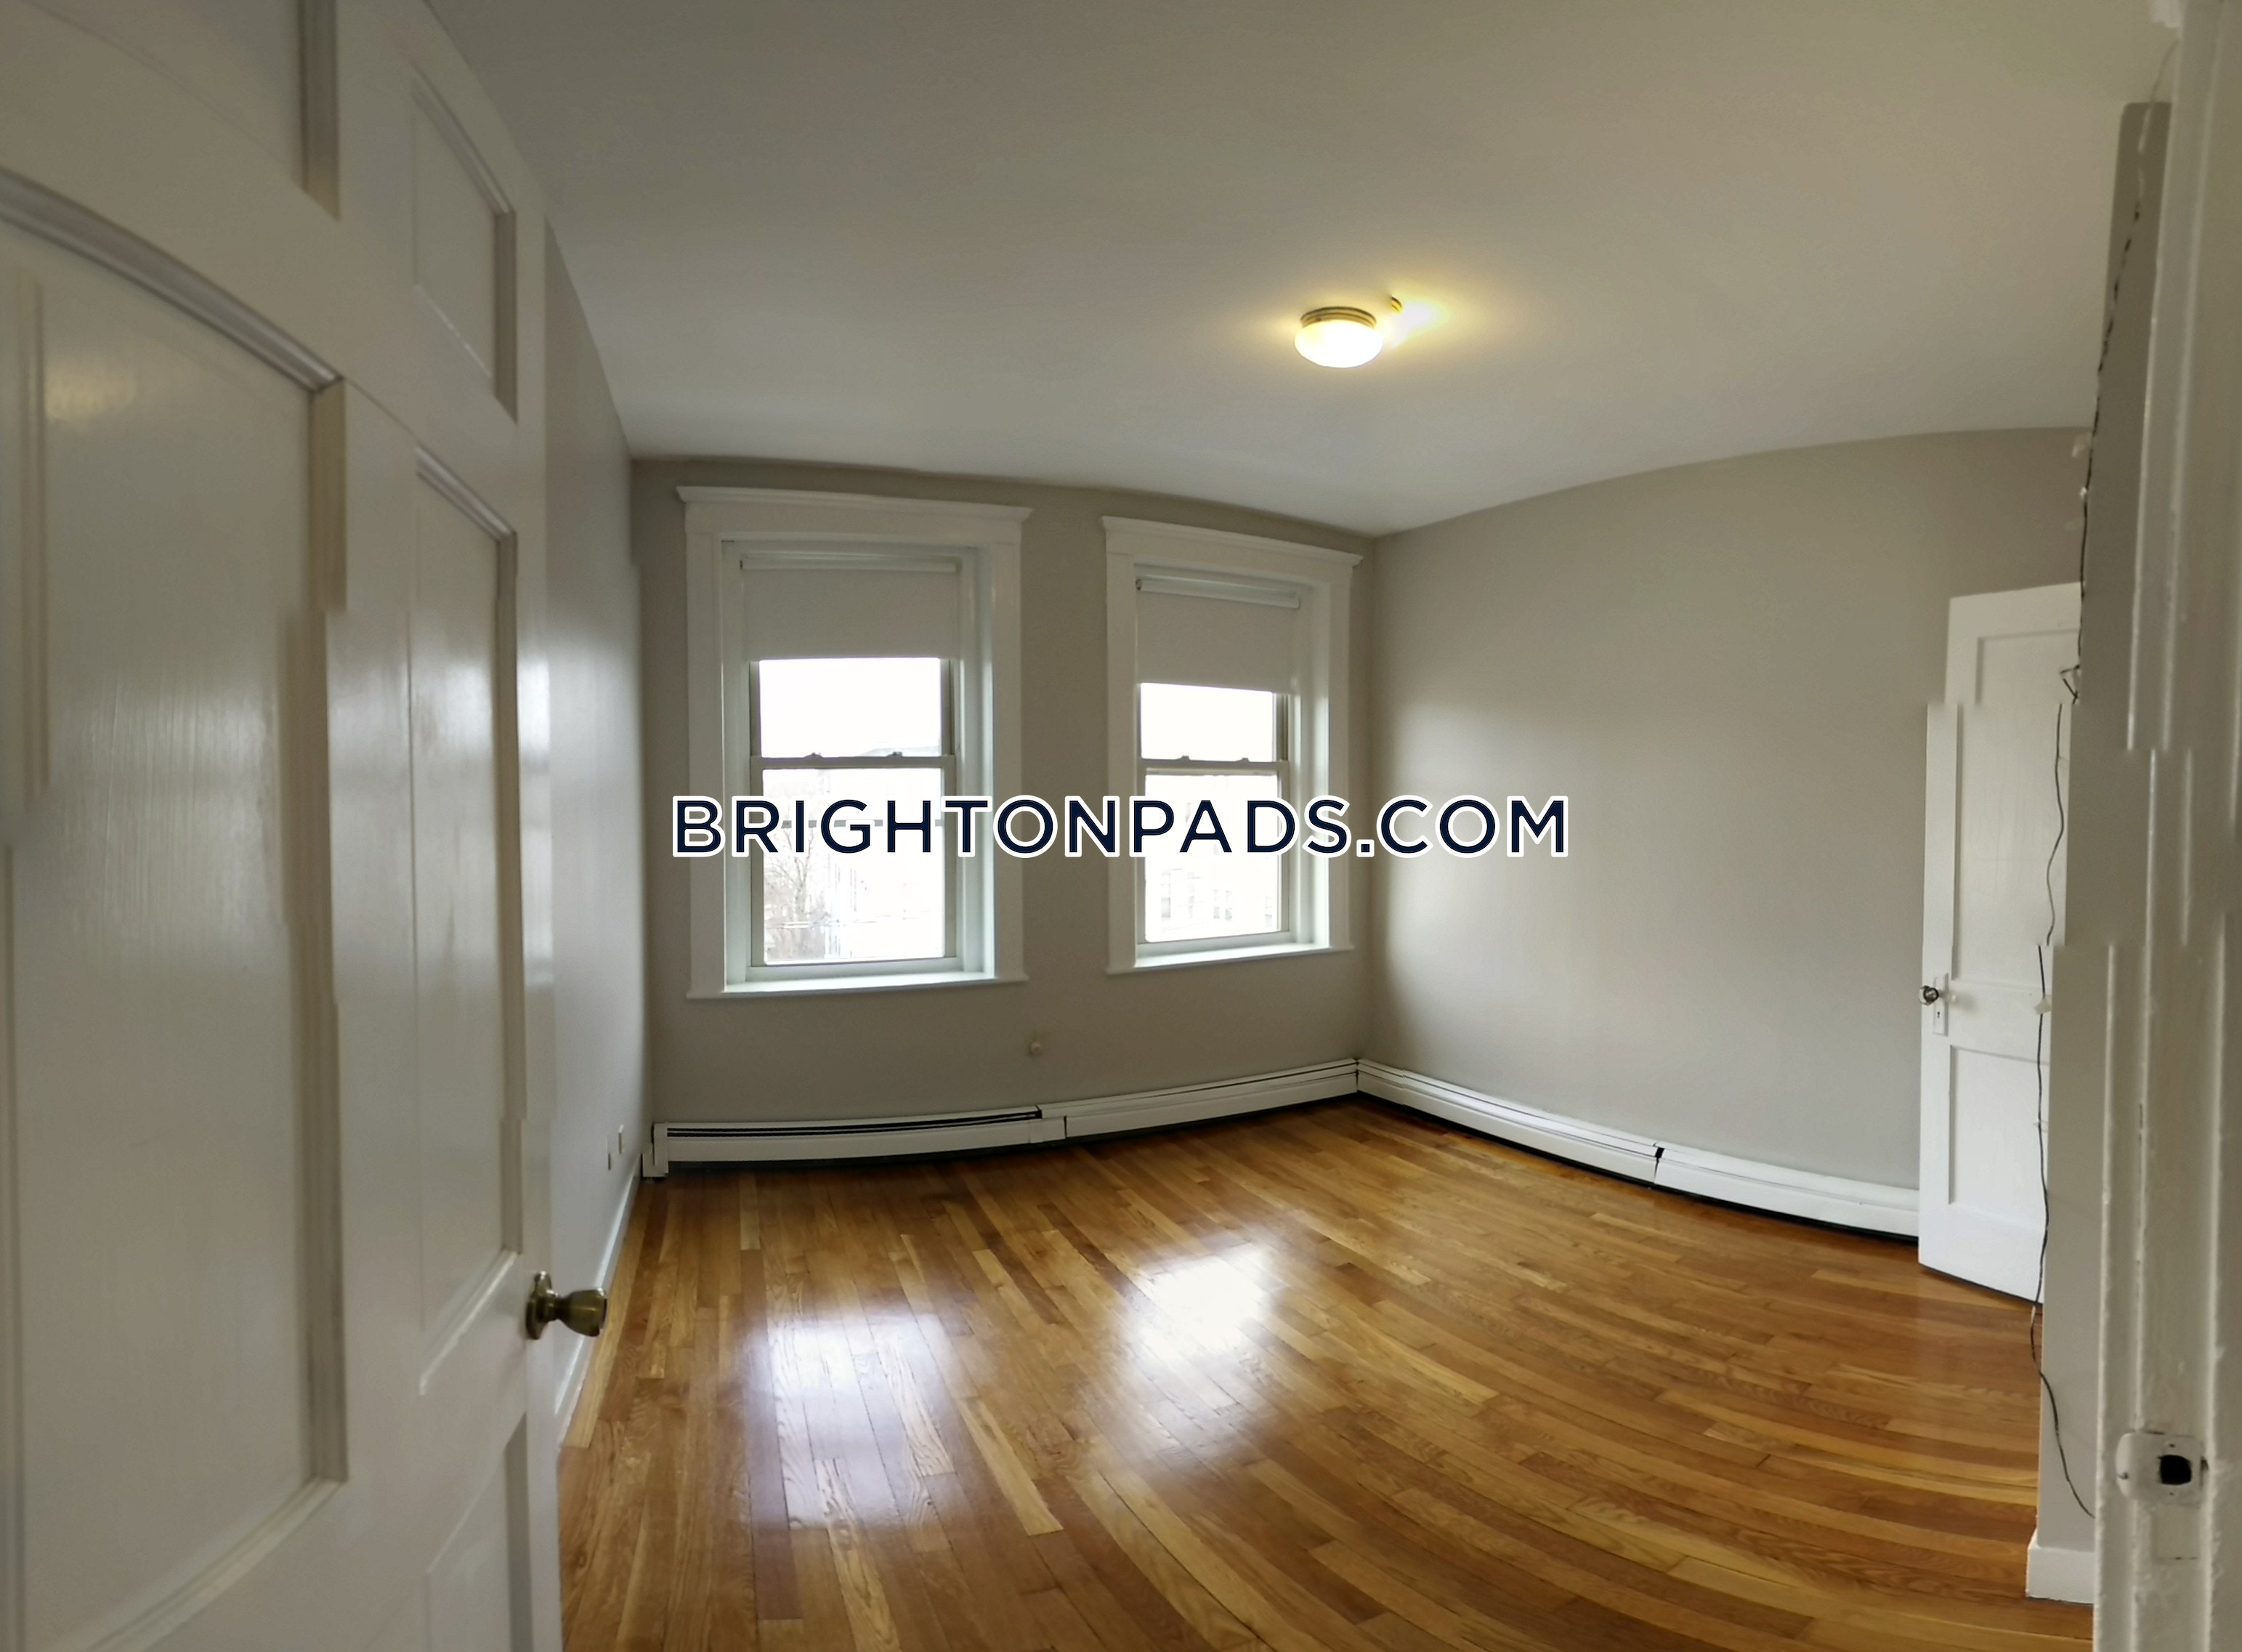 Great 2 bedroom apartment in Brighton one block from Commonwealth ave - Boston - Brighton- Washington St./ Allston St. $2,100